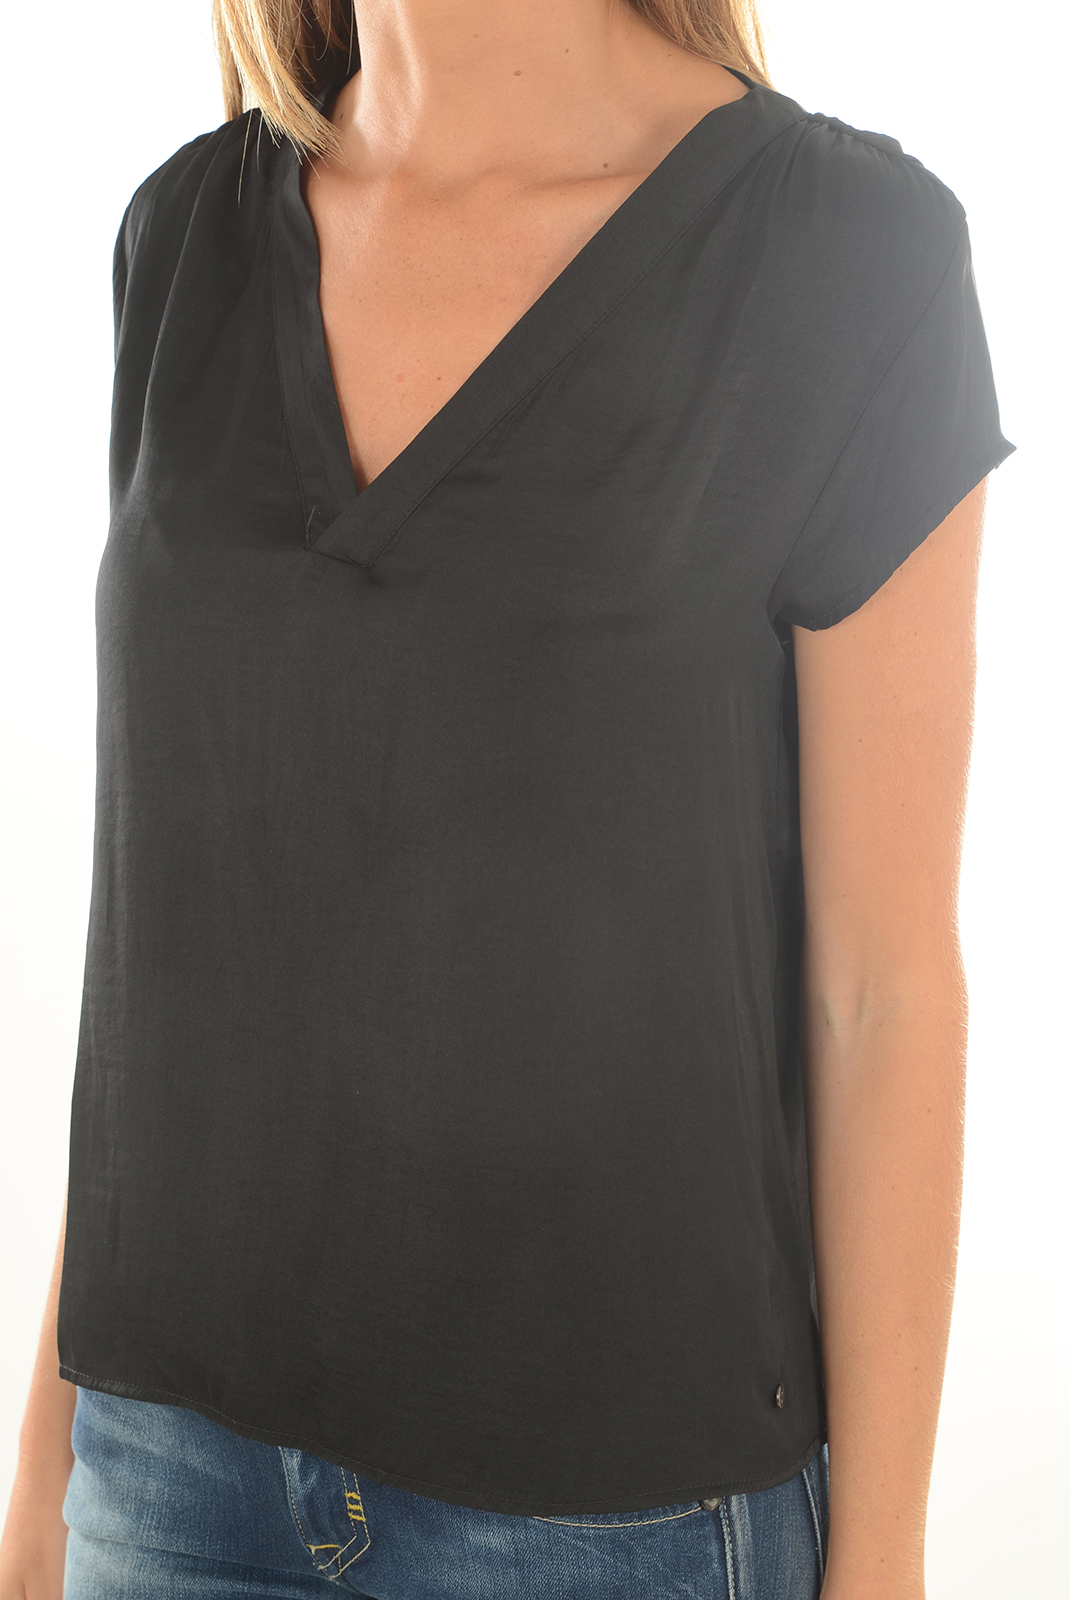 Tops & Tee shirts  Kaporal FLASH BLACK